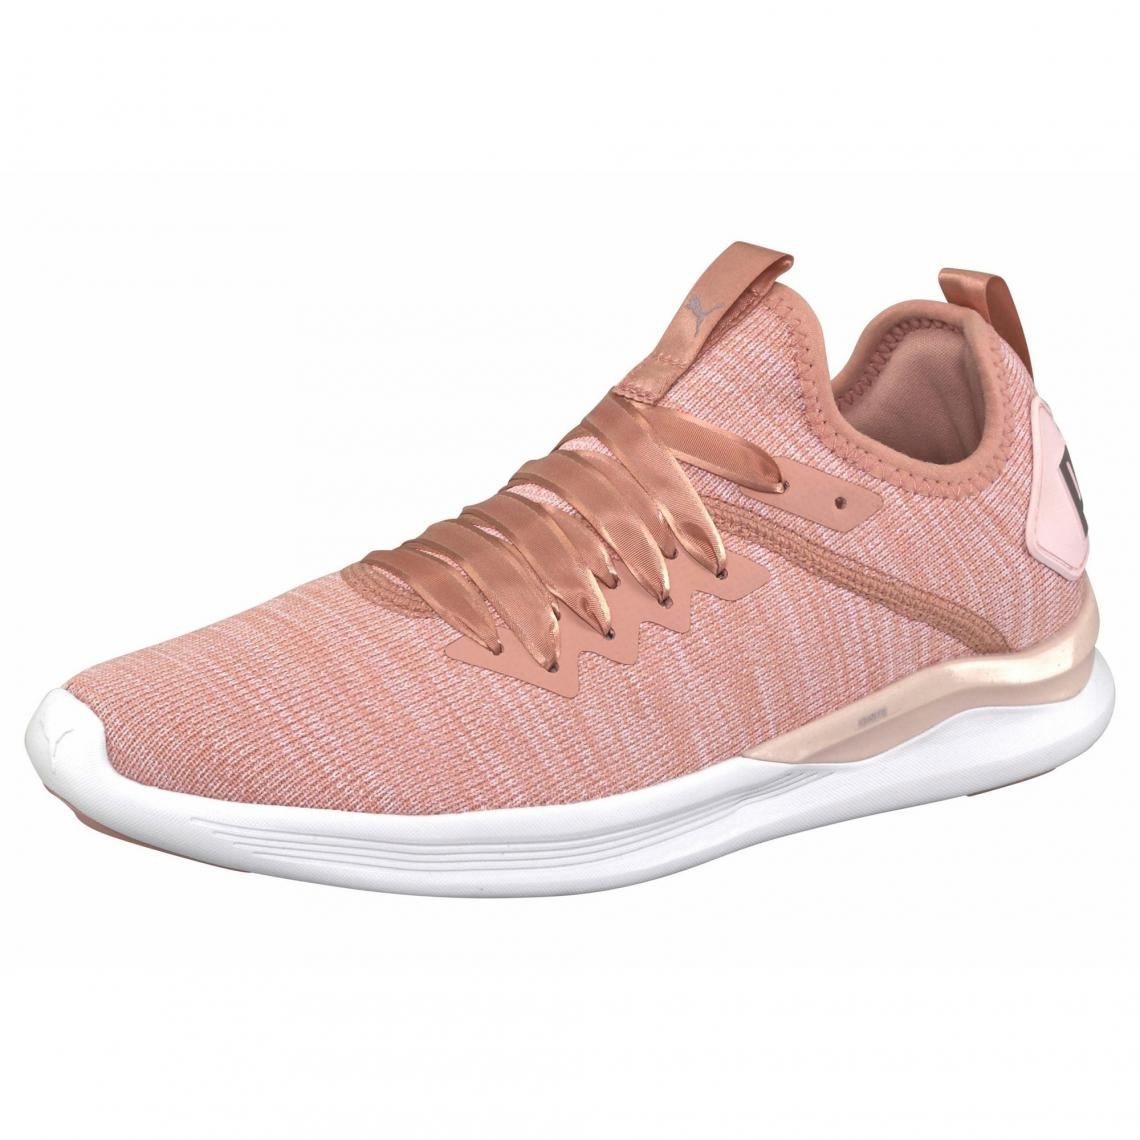 a7b95f3f21 ... Chaussures de fitness femme Puma Ignite Flash evoKnit Satin ...